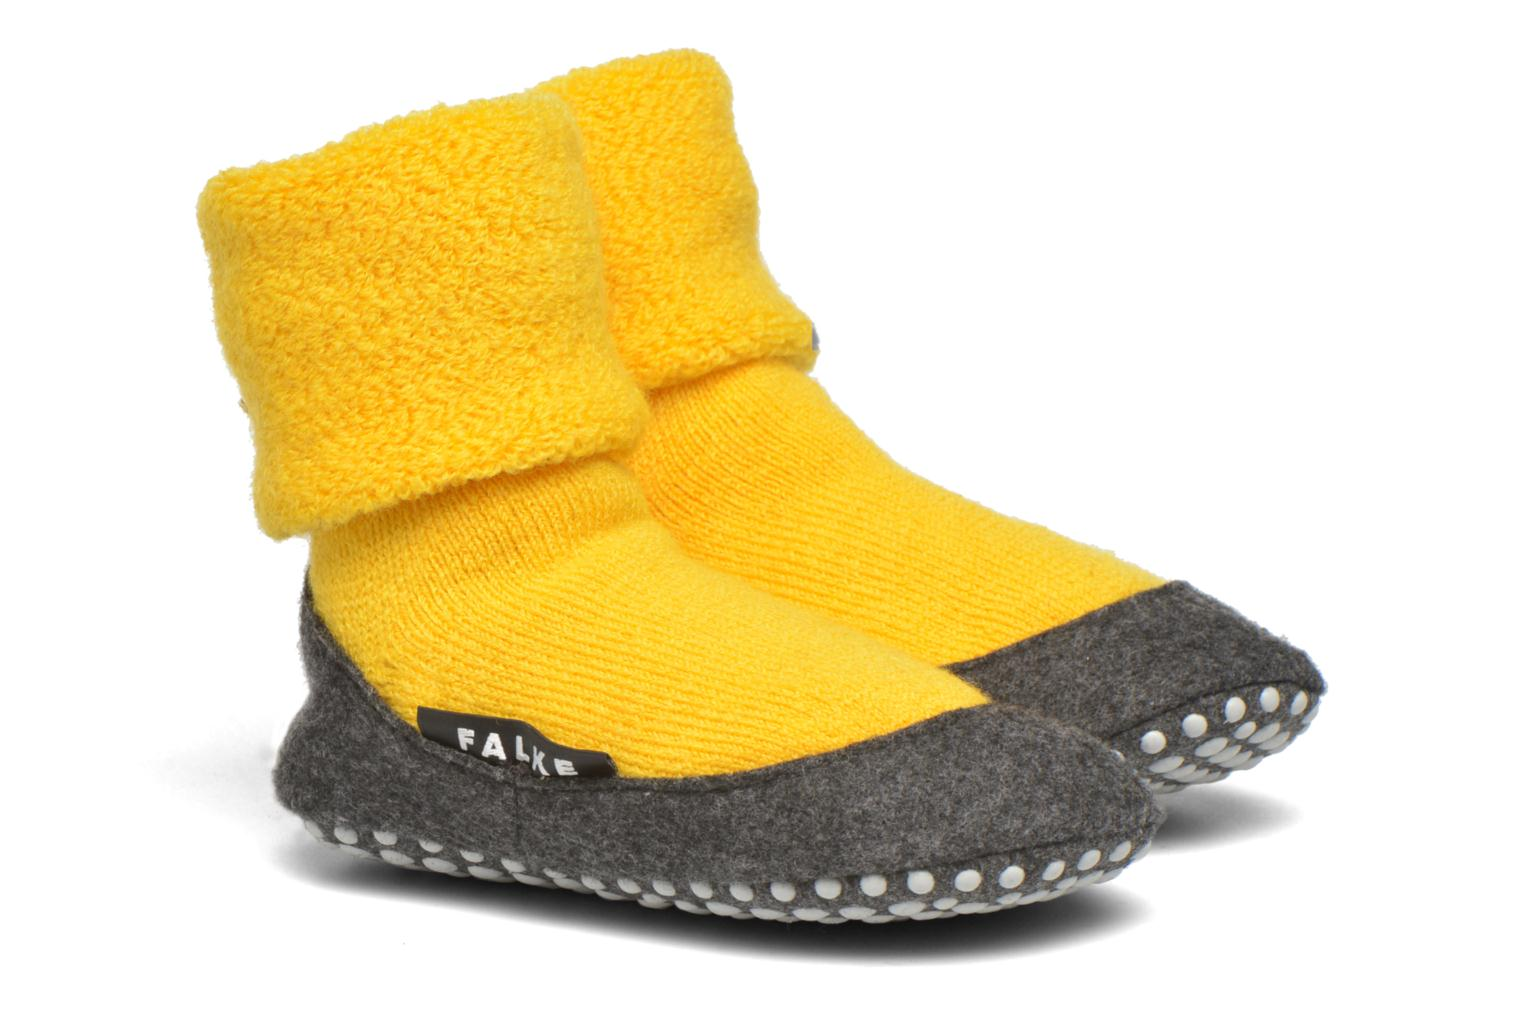 Chaussons-chaussettes Cosyshoes 1180